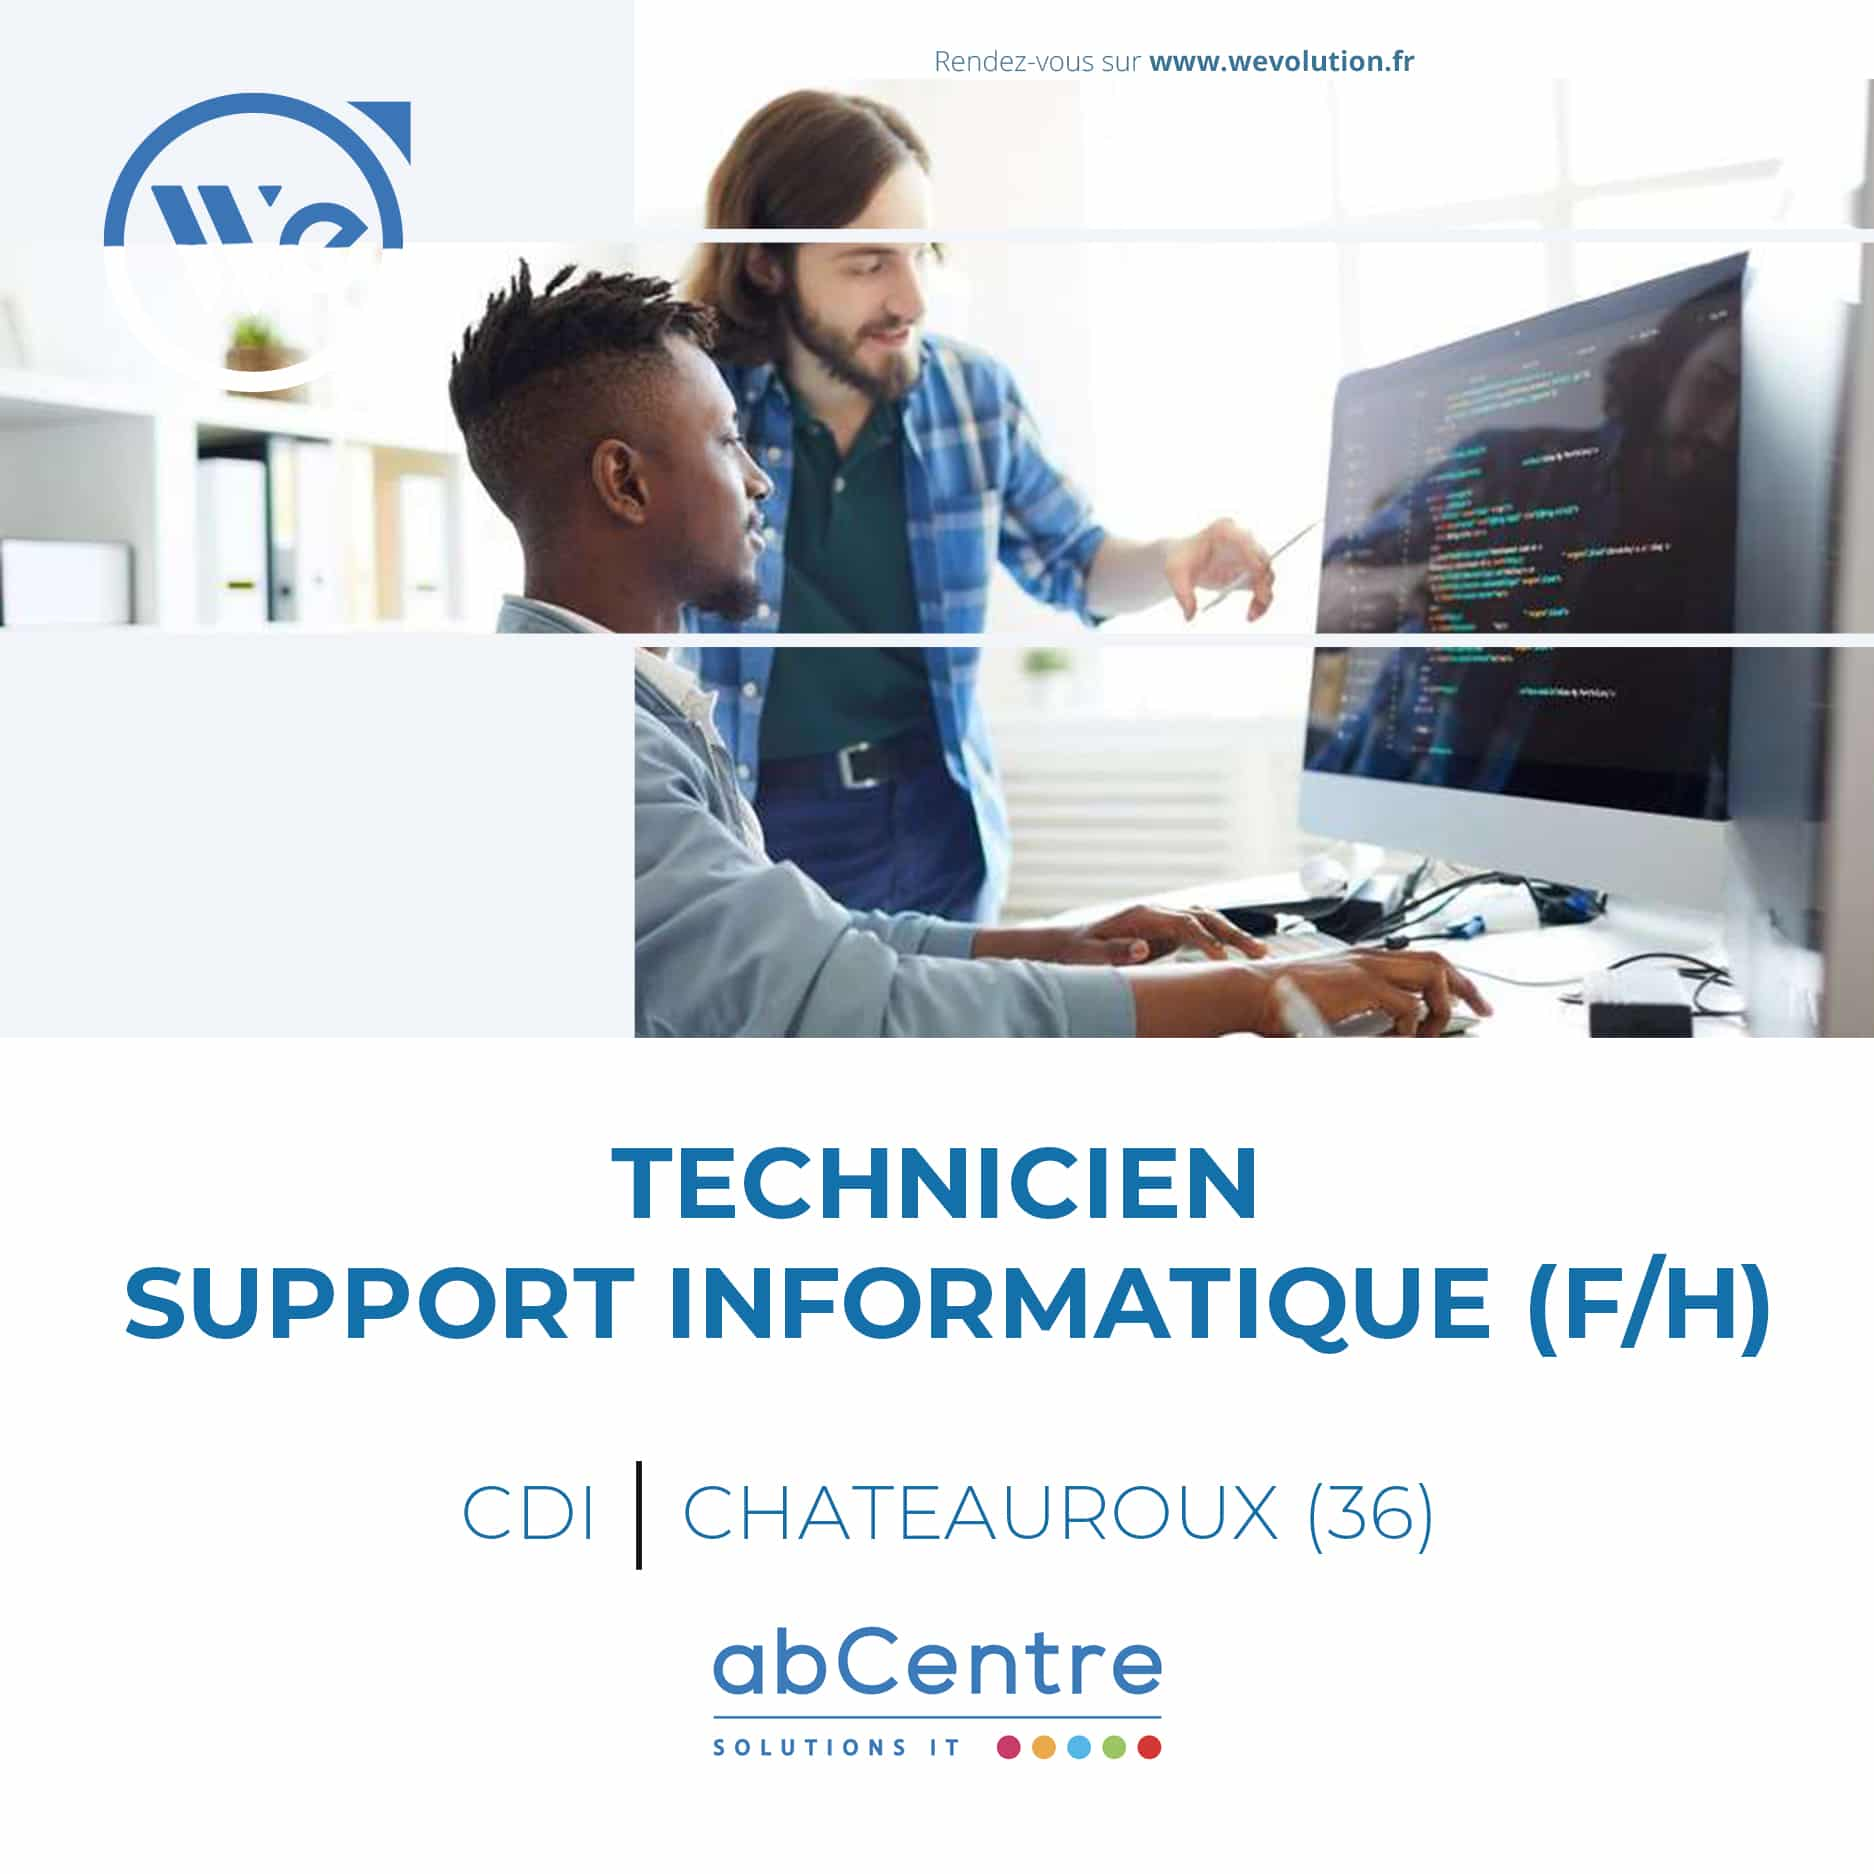 TECHNICIEN SUPPORT INFORMATIQUE – abCentre